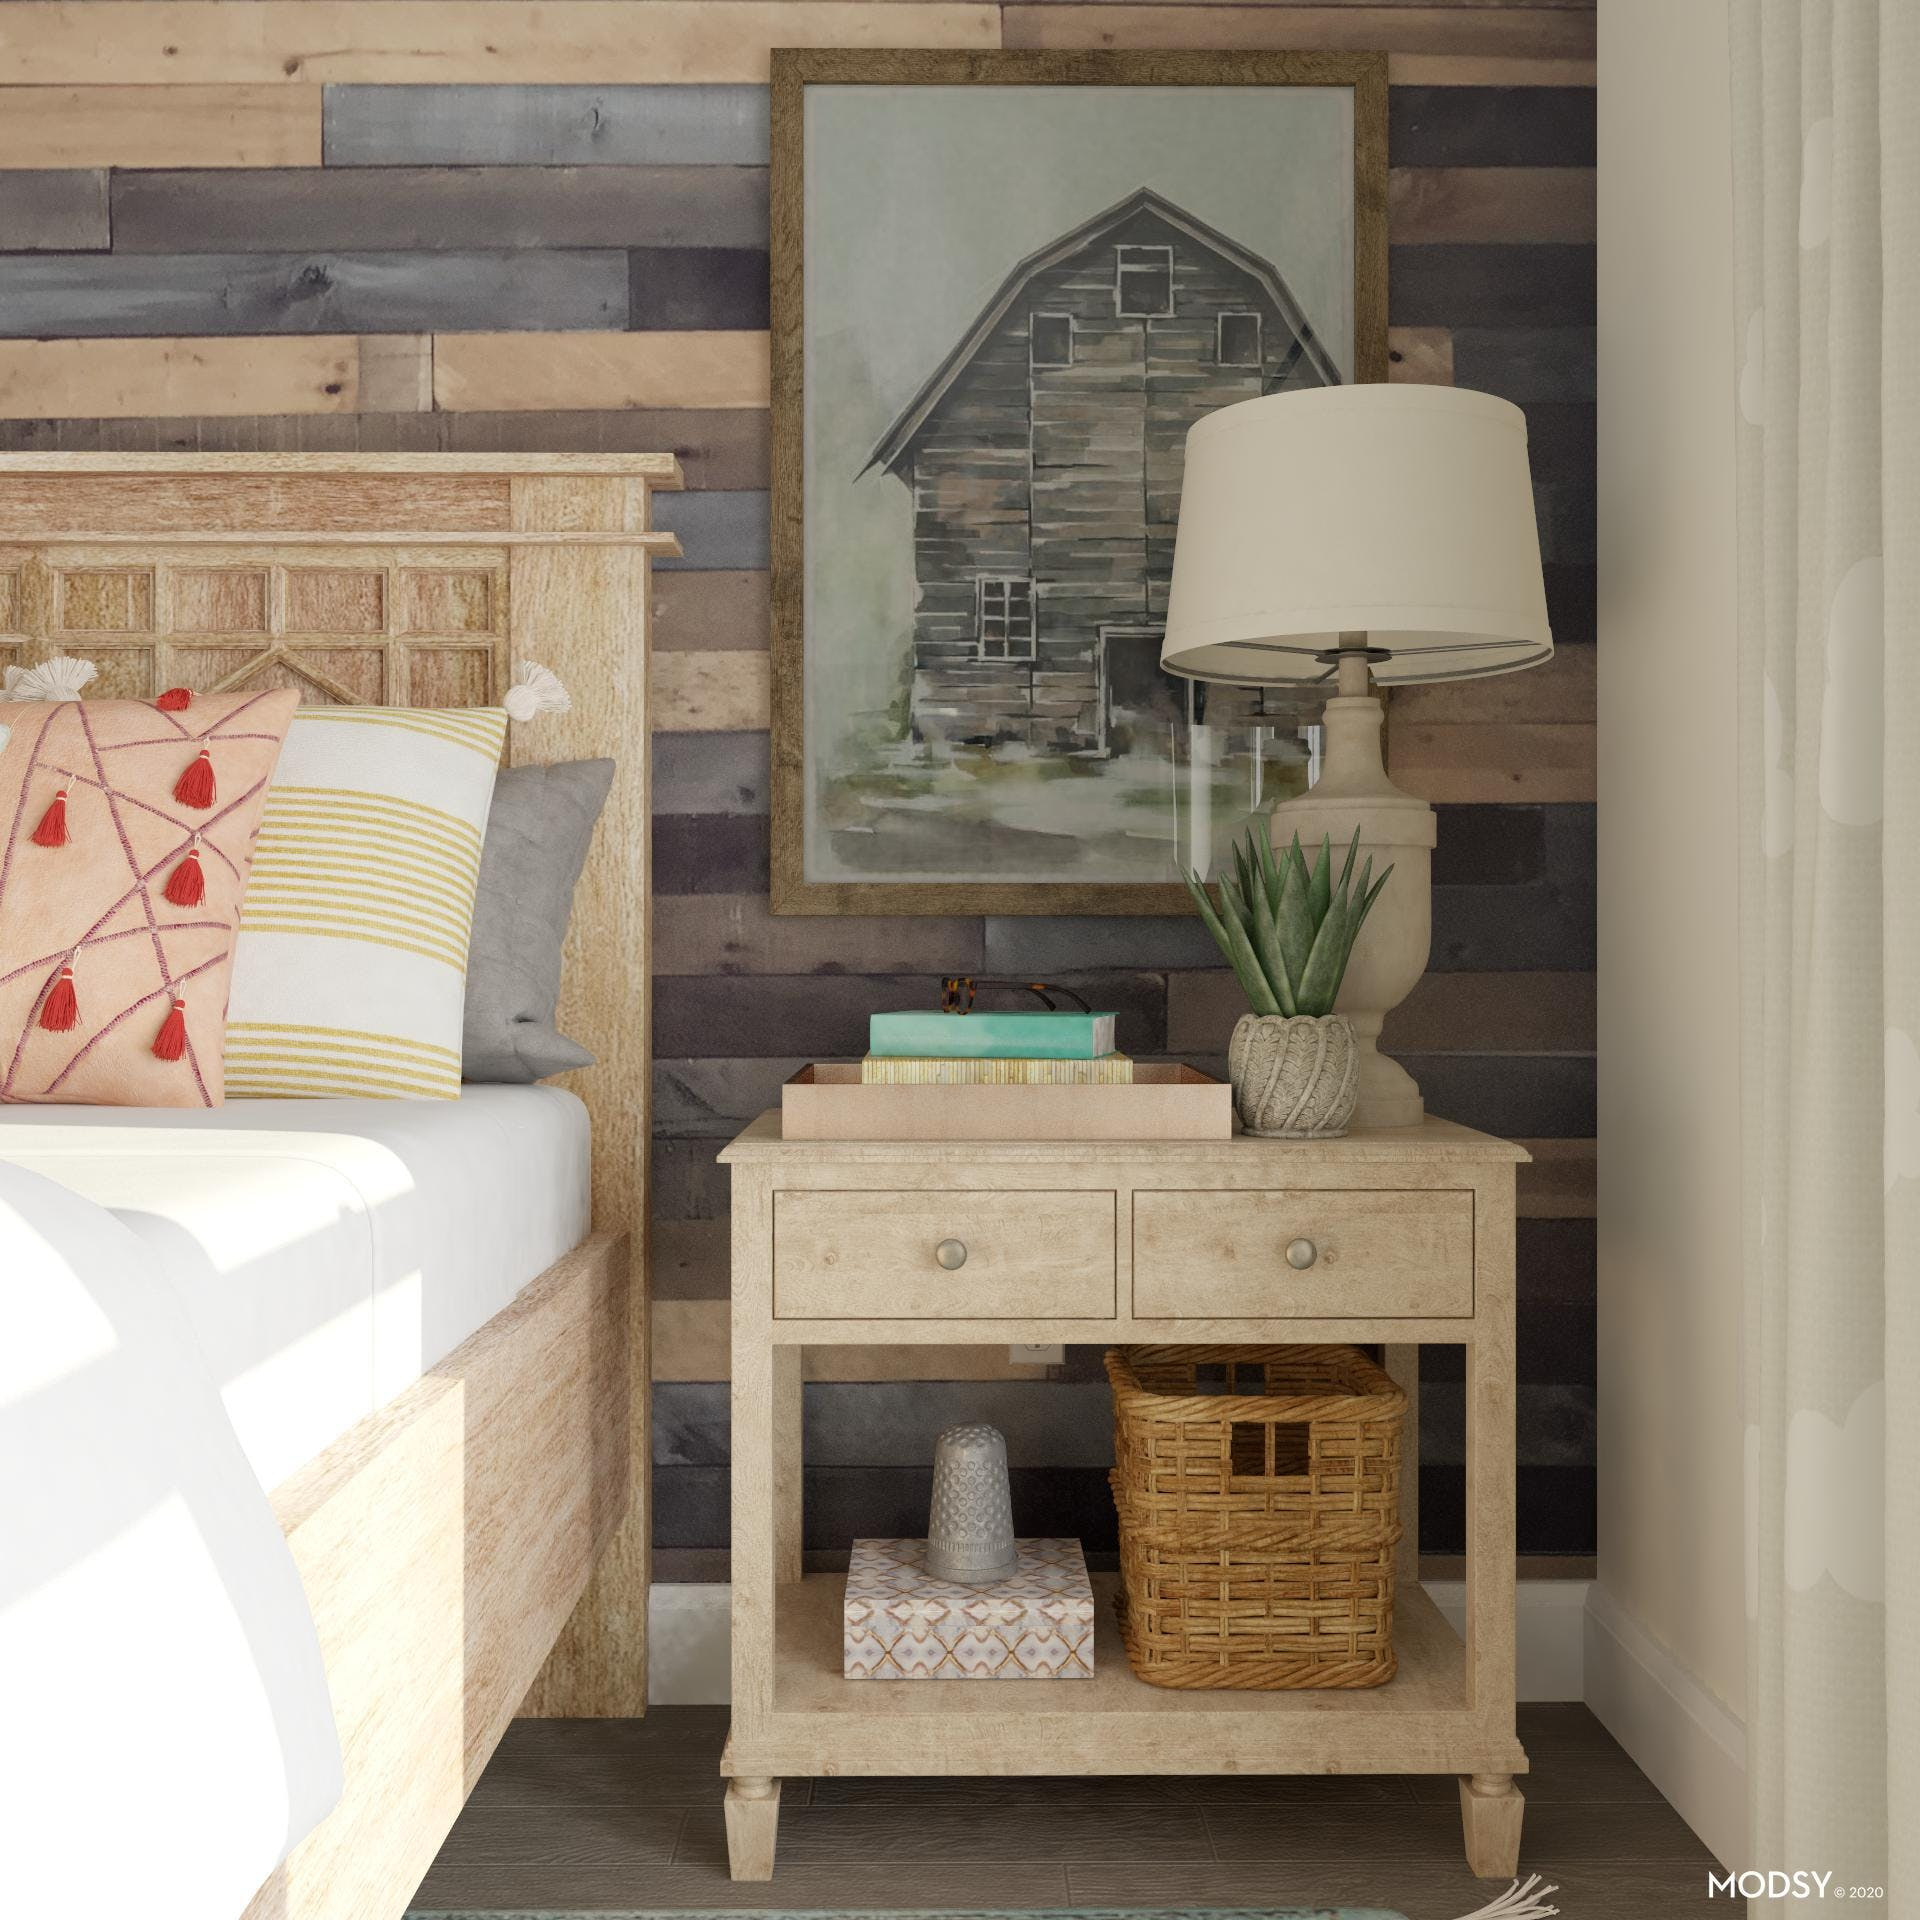 Different Storage Types on a Nightstand